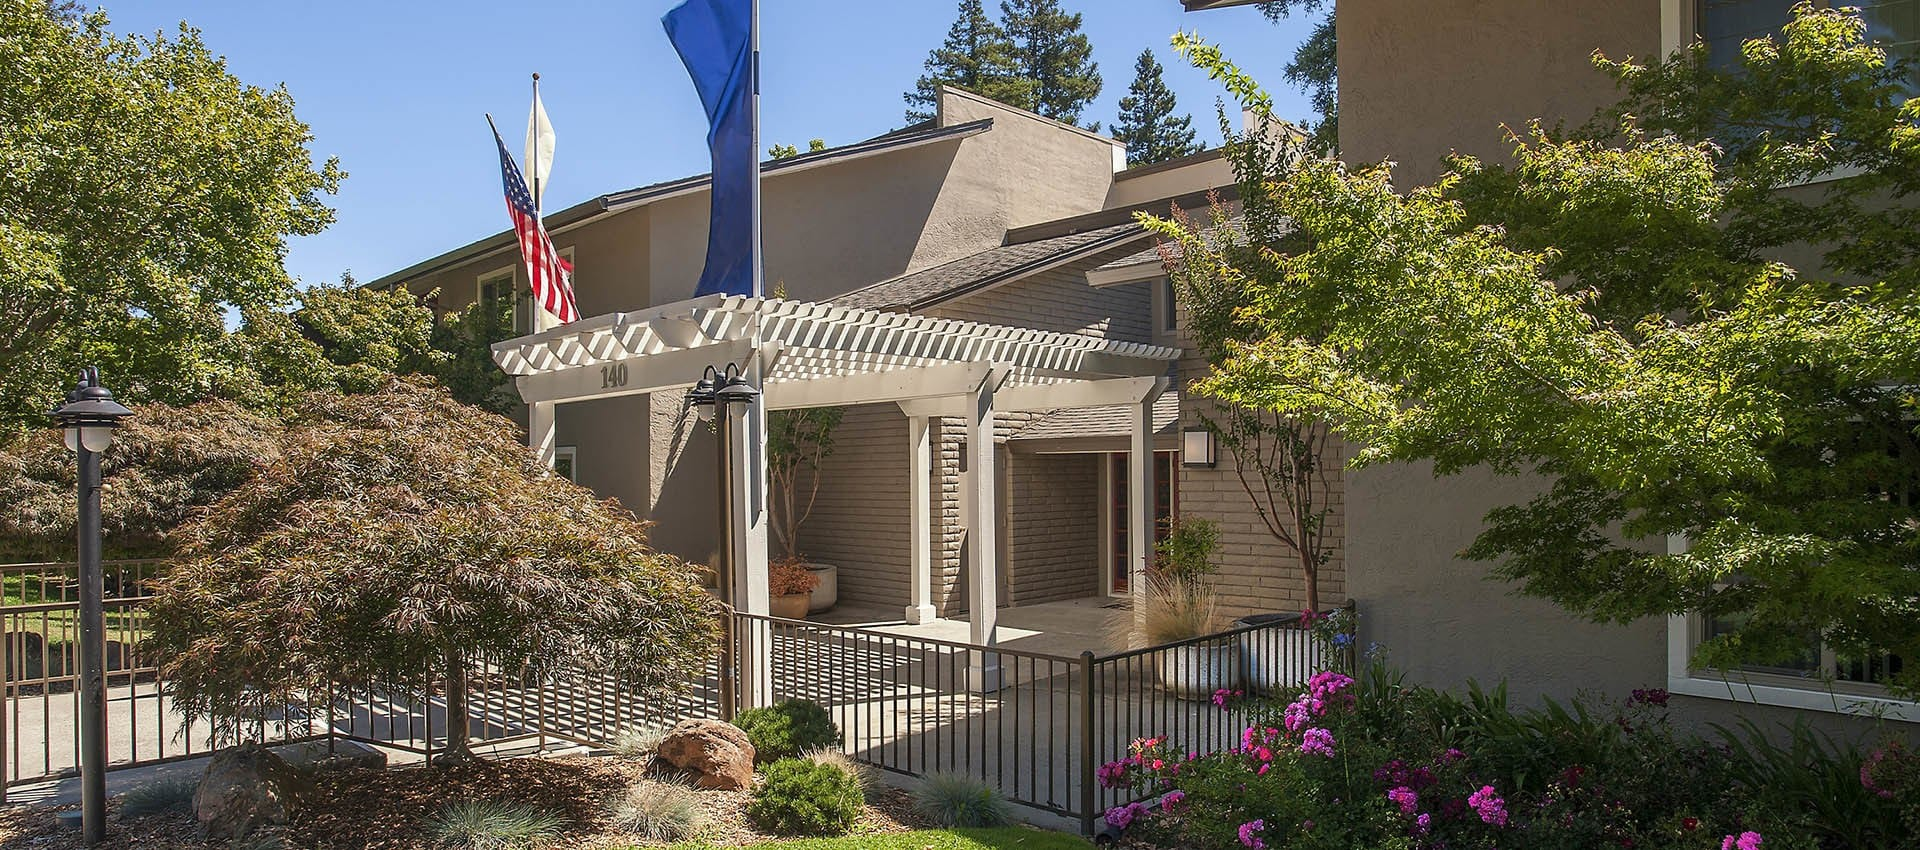 Leasing Office Entrance at Flora Condominium Rentals in Walnut Creek, California